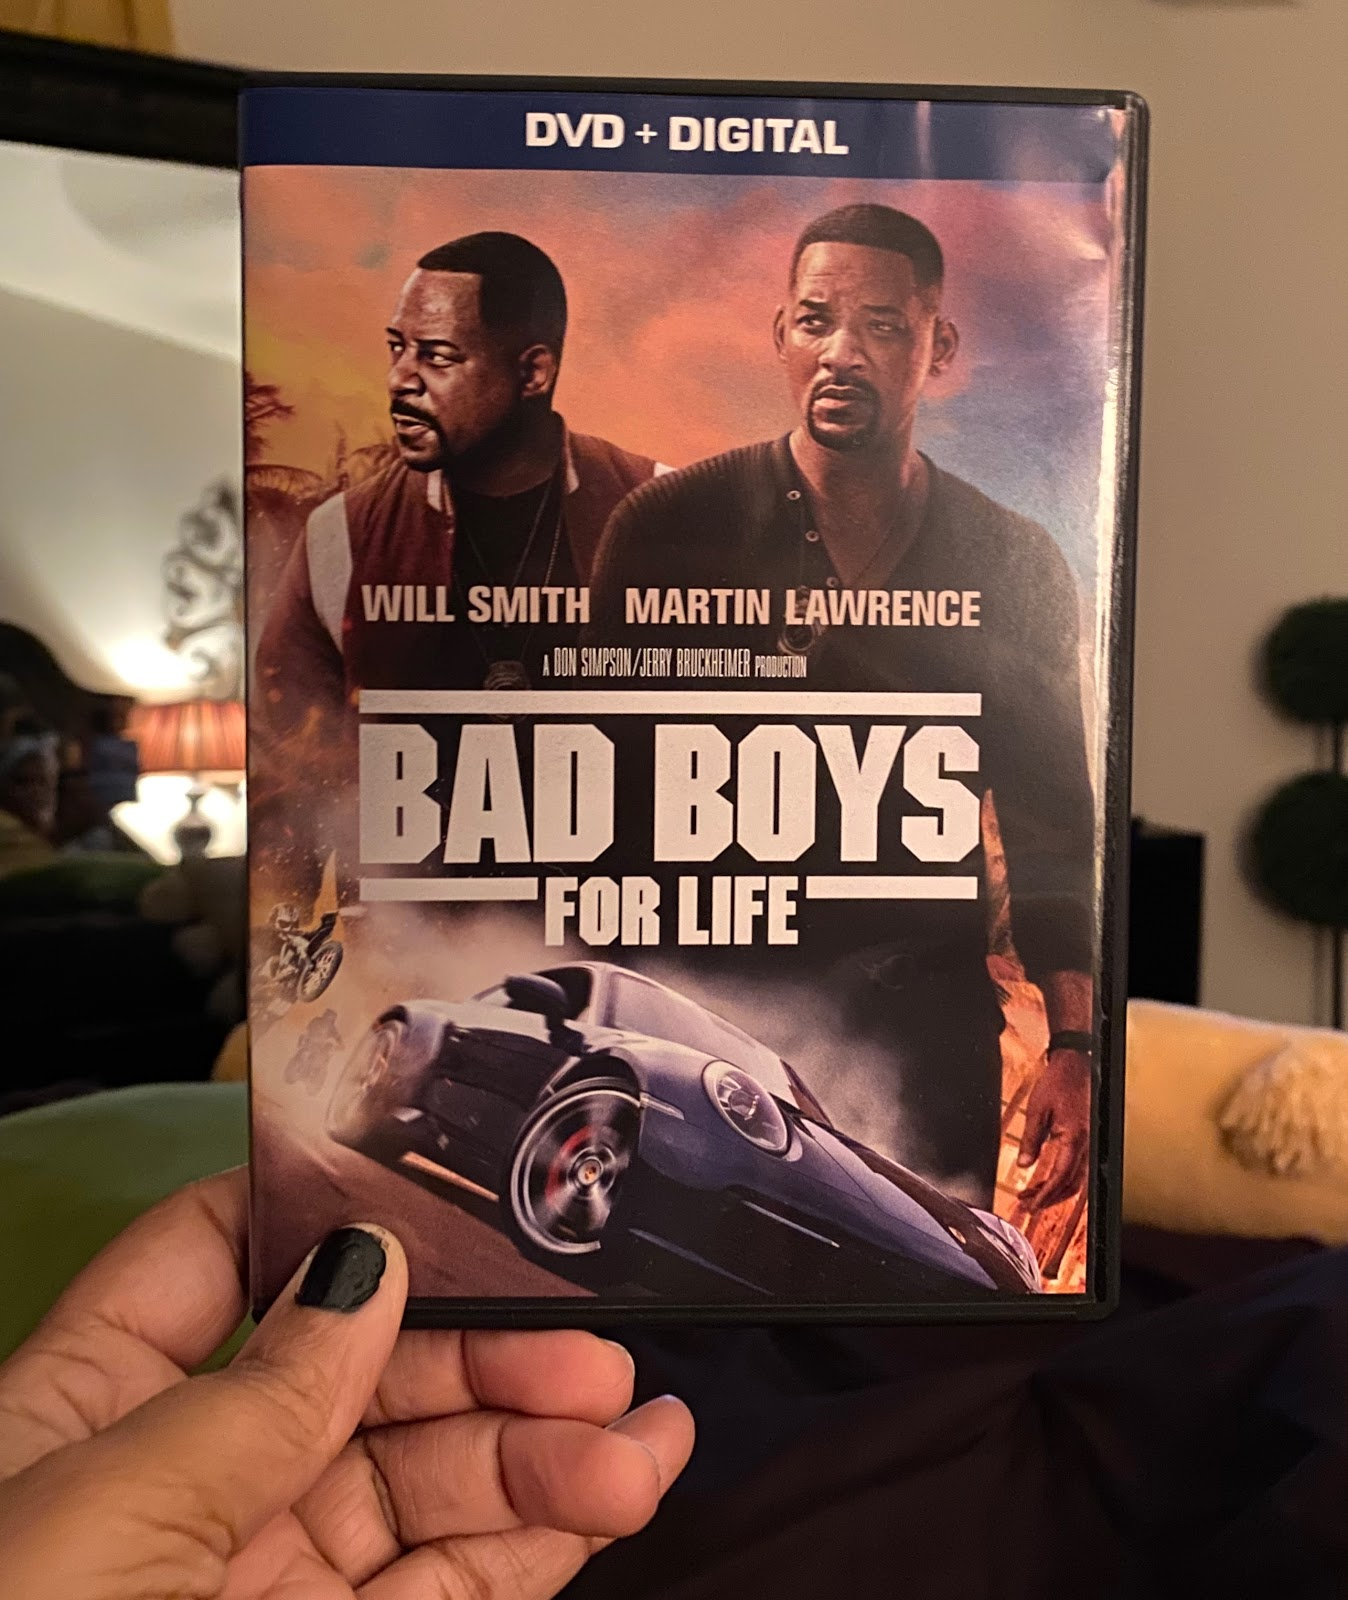 Favorite Movie Bad Boys For Life: Weekend Bits And Favorites: All The Junk That Helps Me Feel Good!